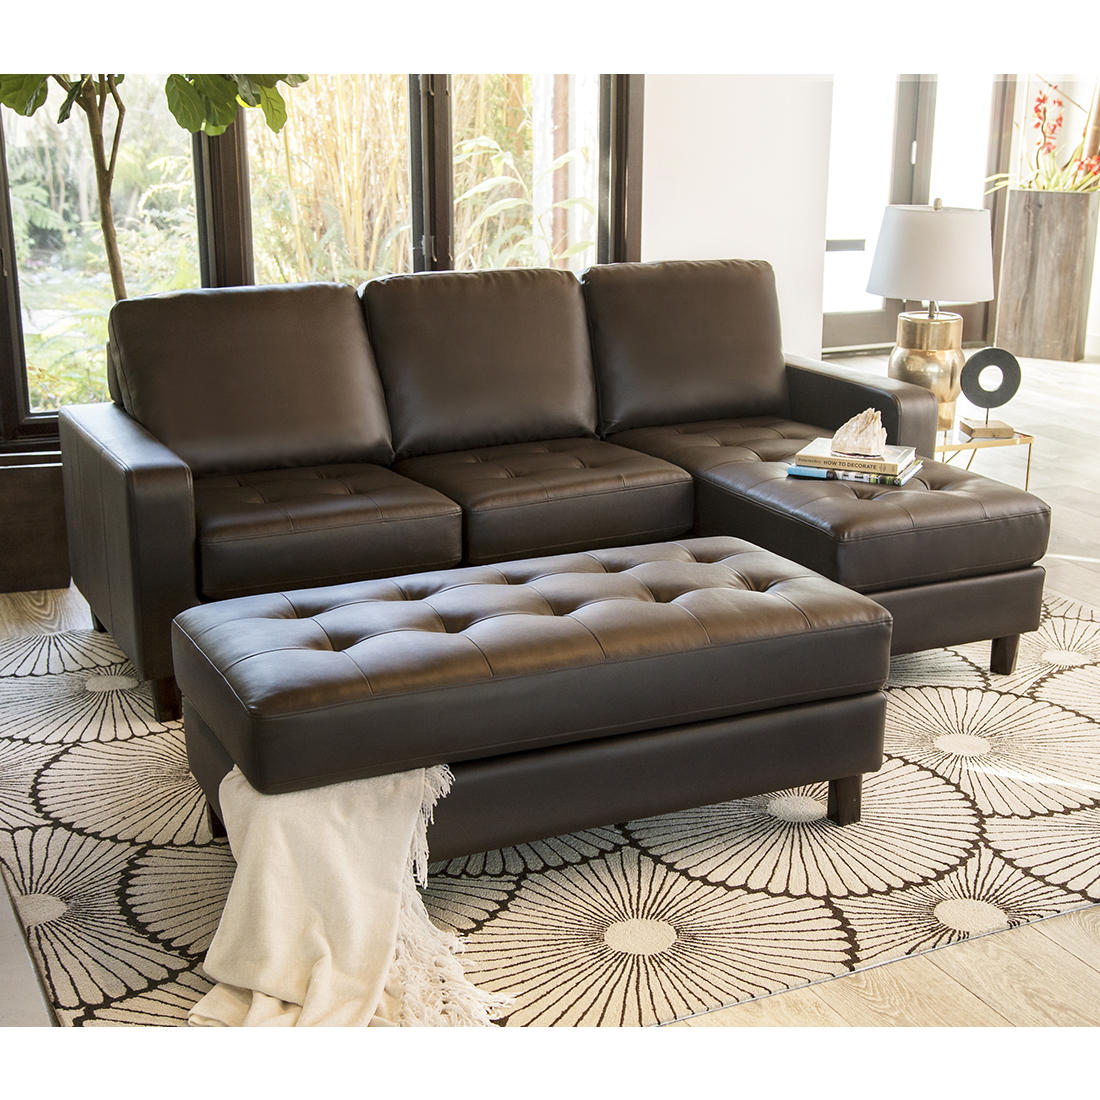 Awesome Abbyson Living Emelia Reversible Sectional And Ottoman Brown Ncnpc Chair Design For Home Ncnpcorg